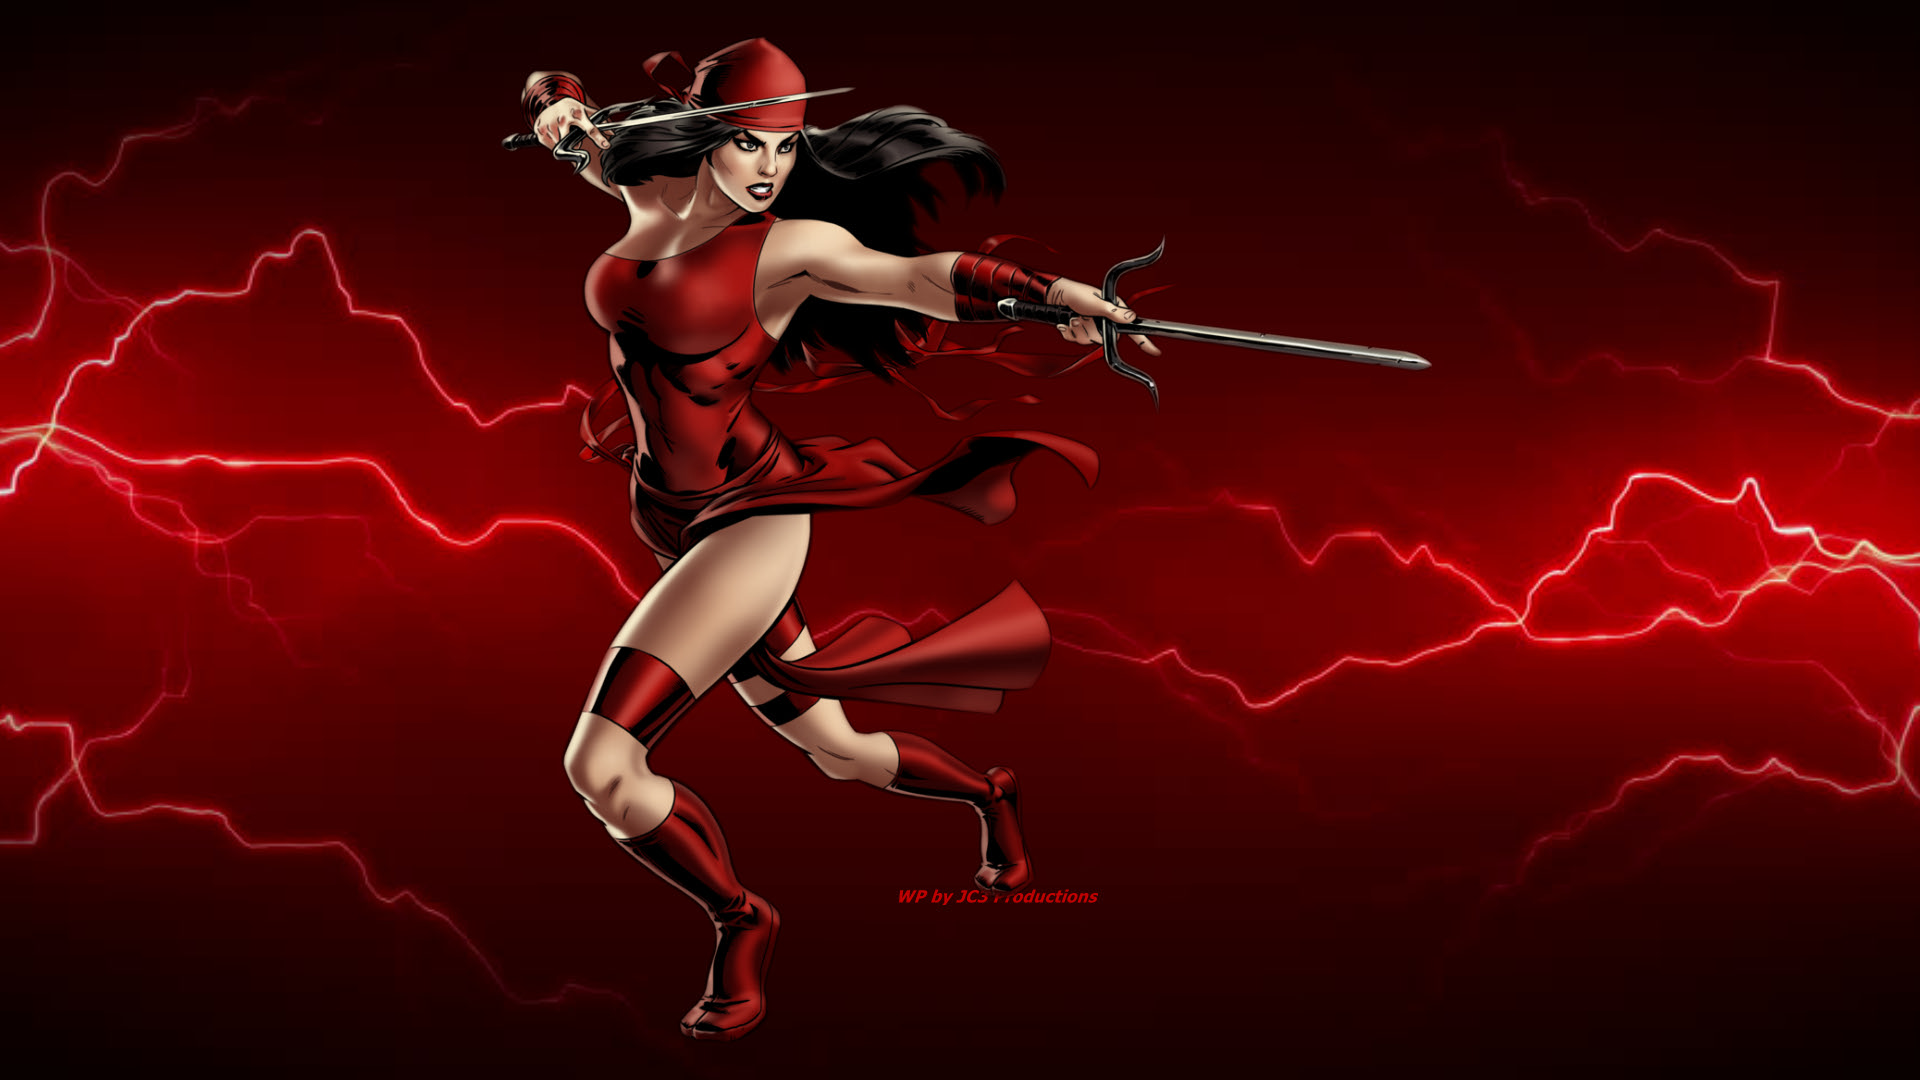 Daredevil images Elektra Electric. wallpaper jpg HD wallpaper and background photos